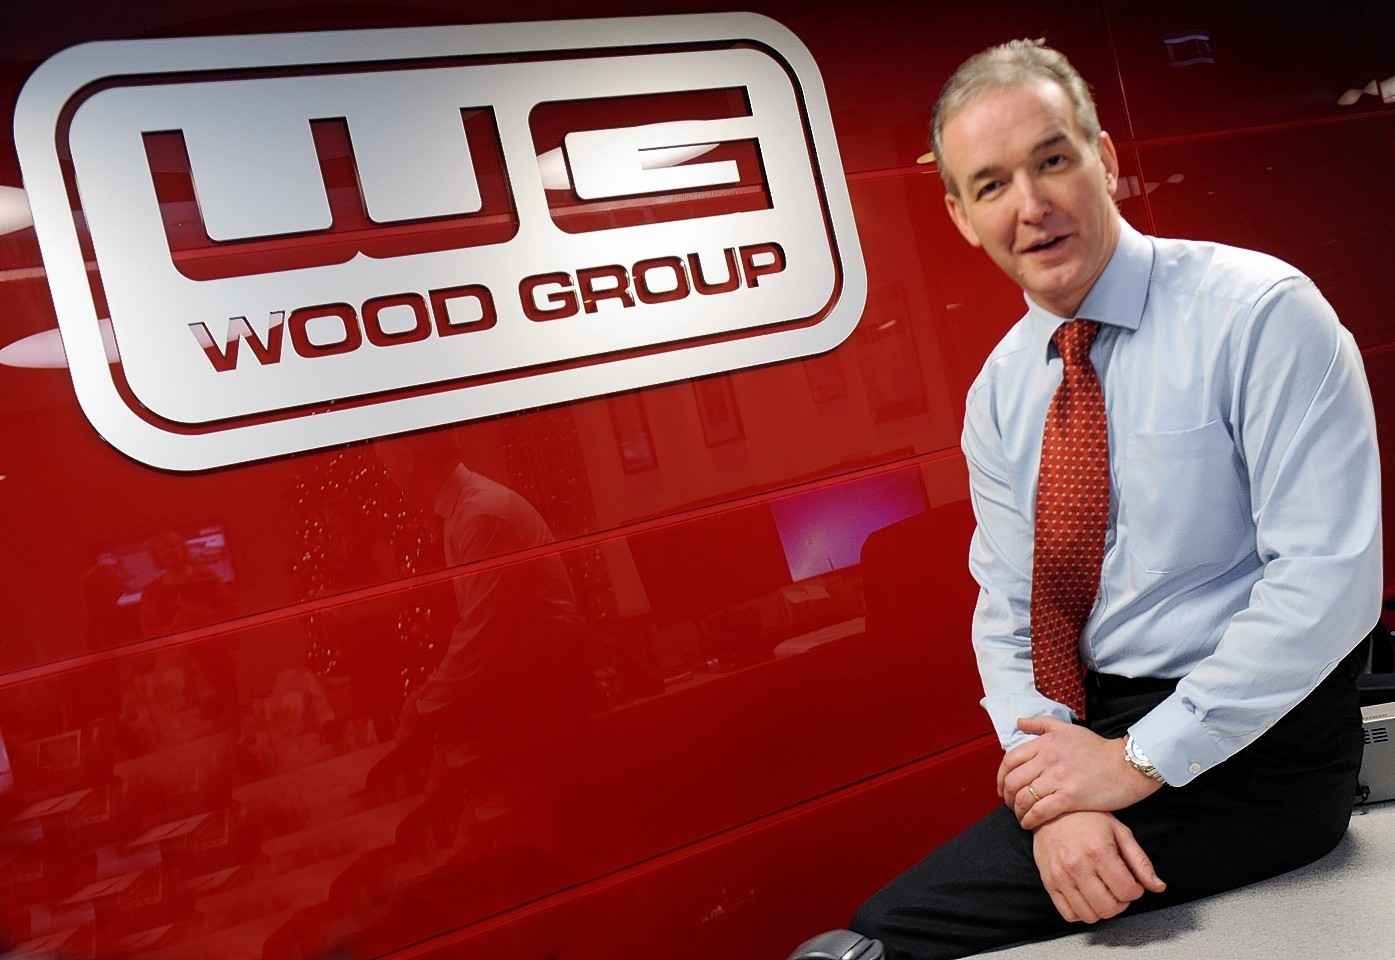 Wood Group PSN Chief Executive Robin Watson